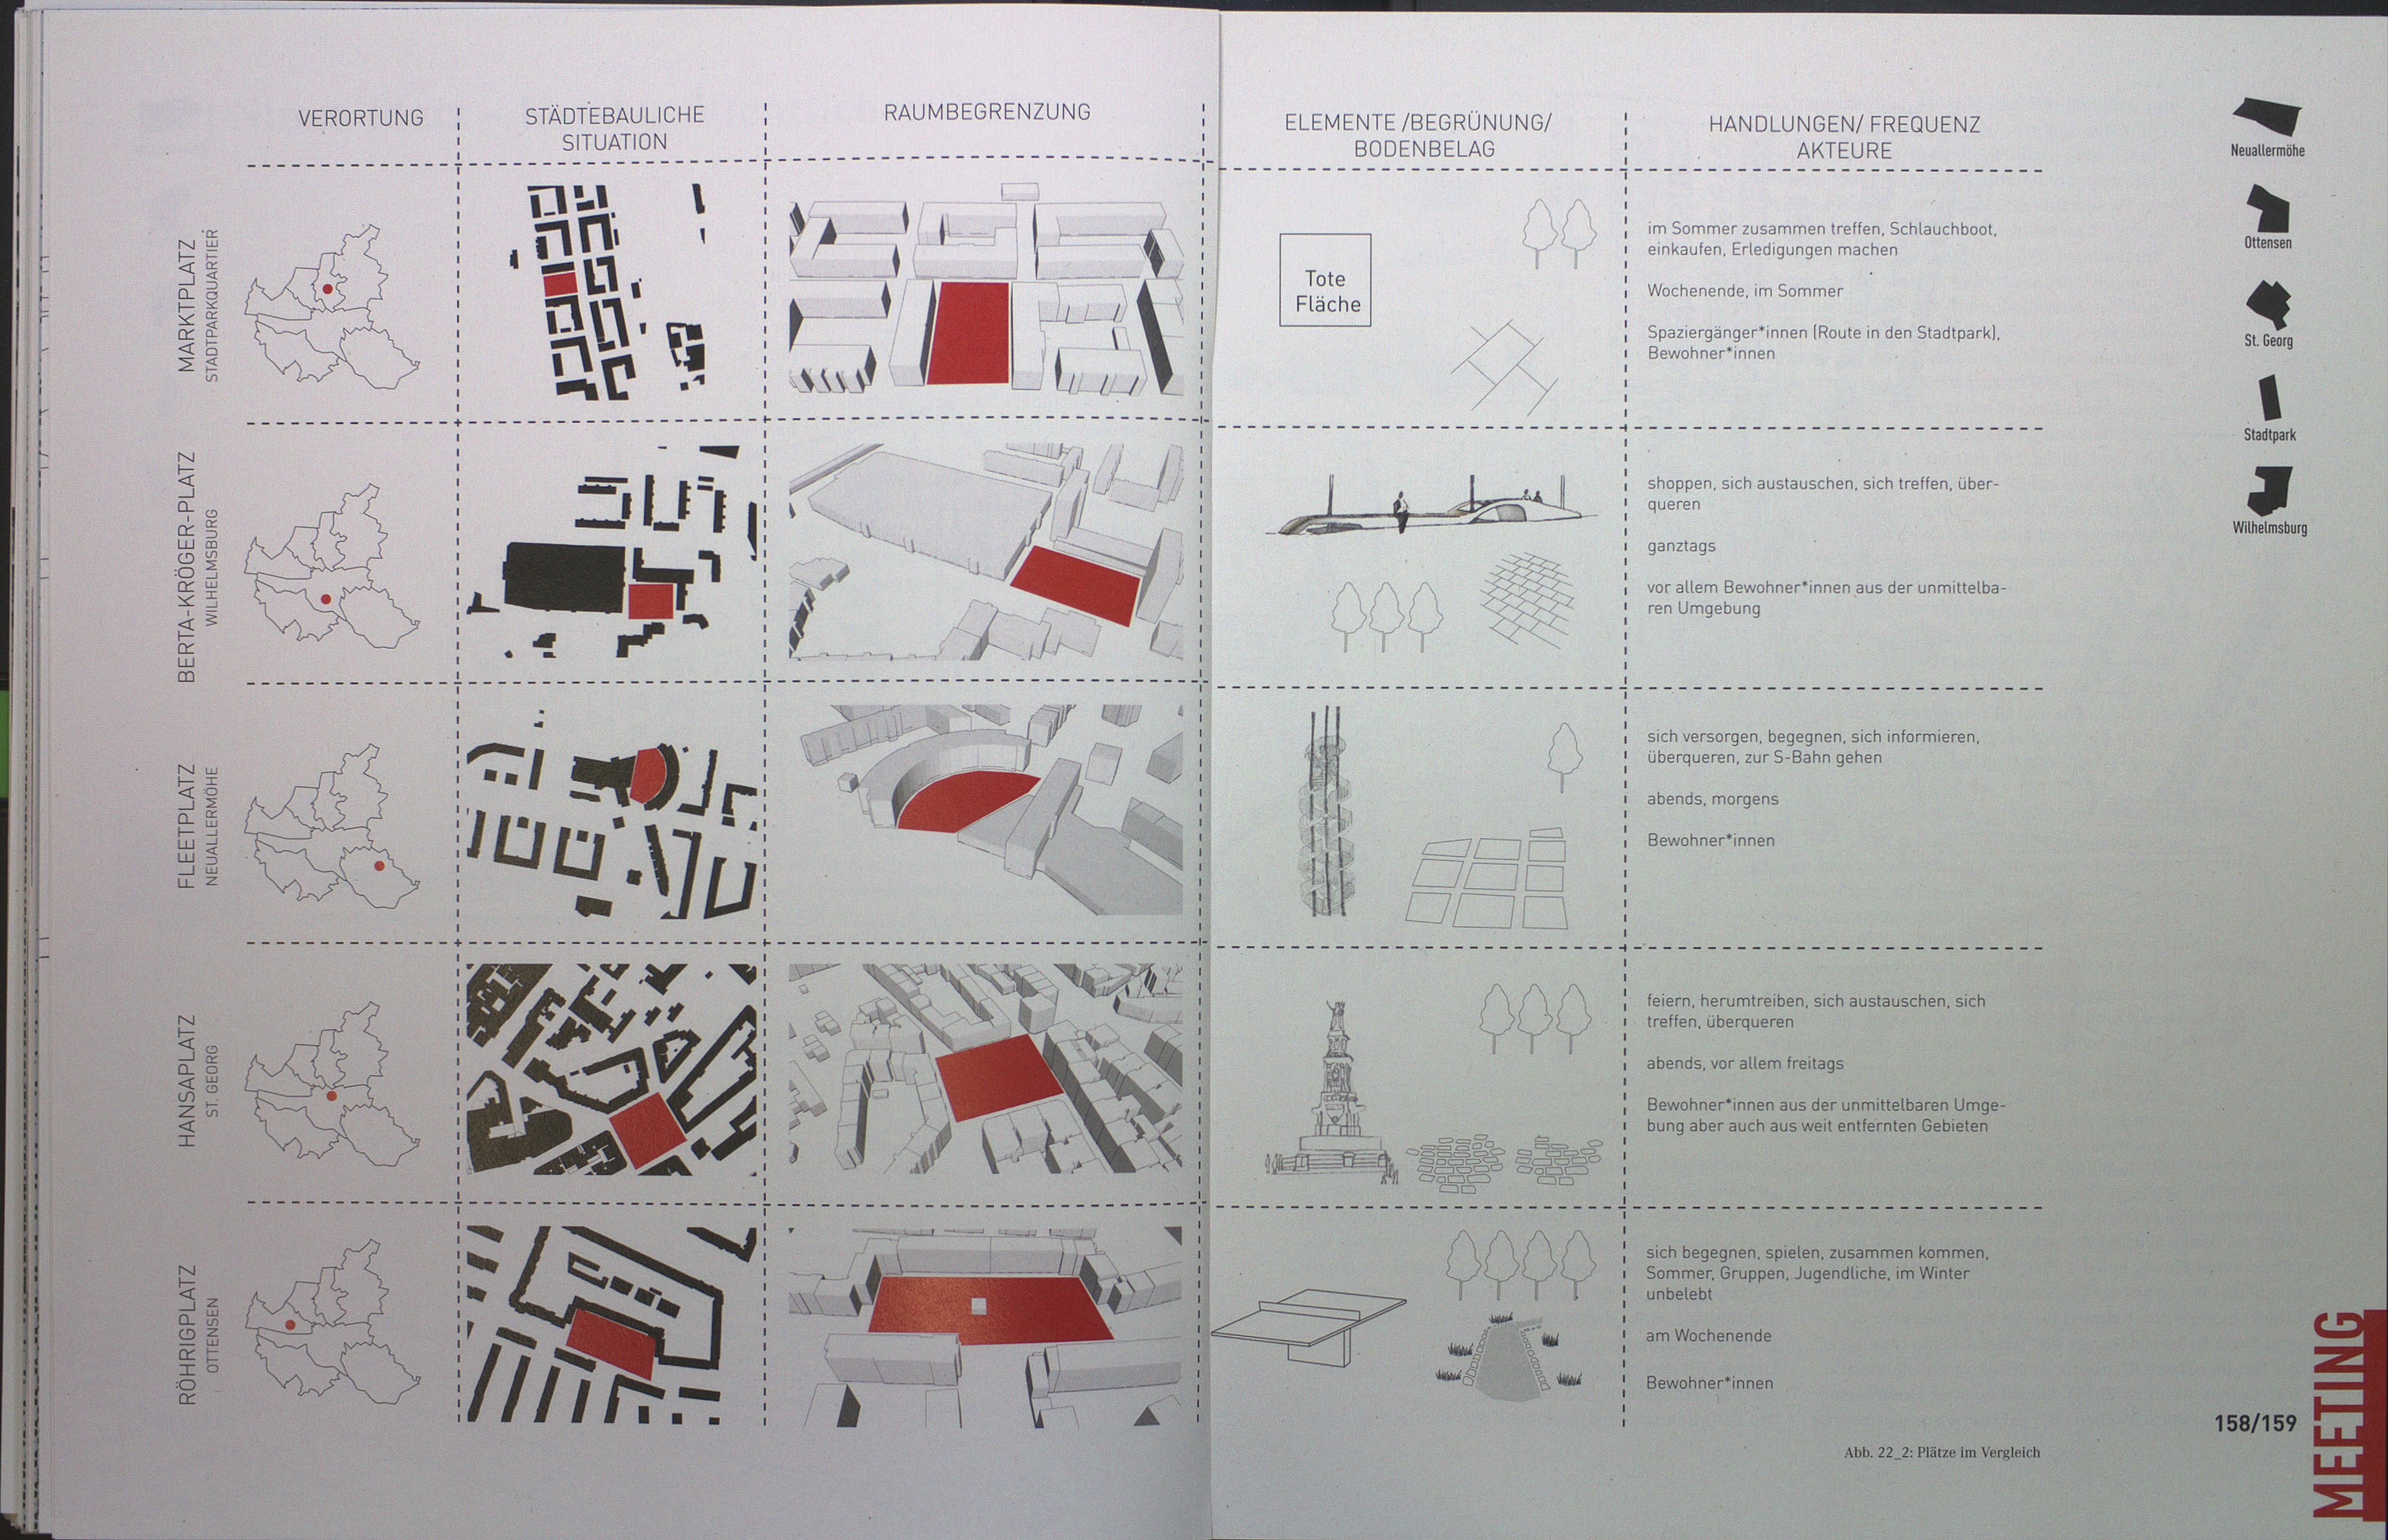 http://www.ud.hcu-hamburg.de/projects/student-projects/modes-of-realising-wohnen-atlas-2017-2018